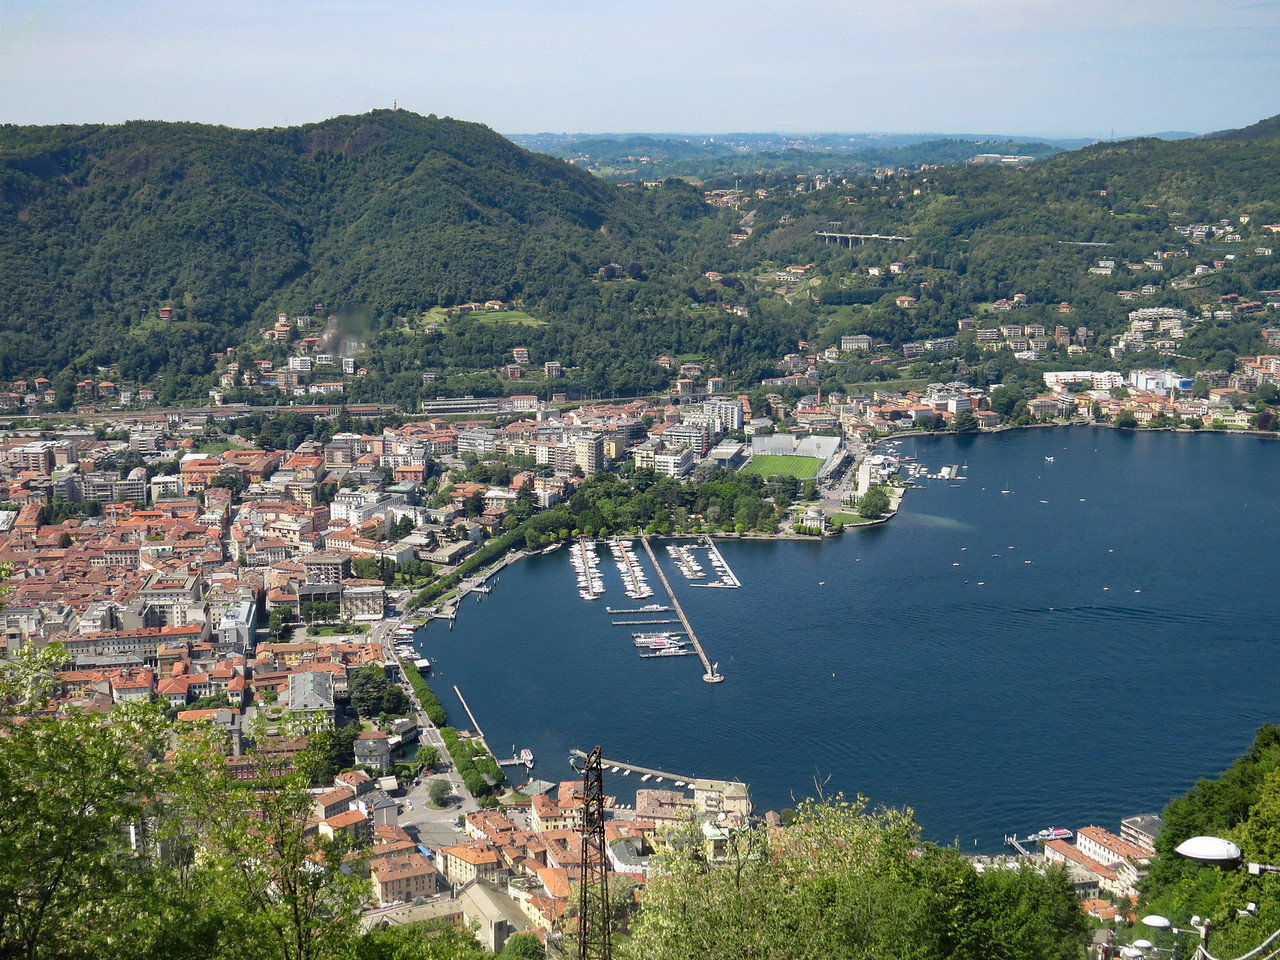 View of Como from the Brunate Funicular